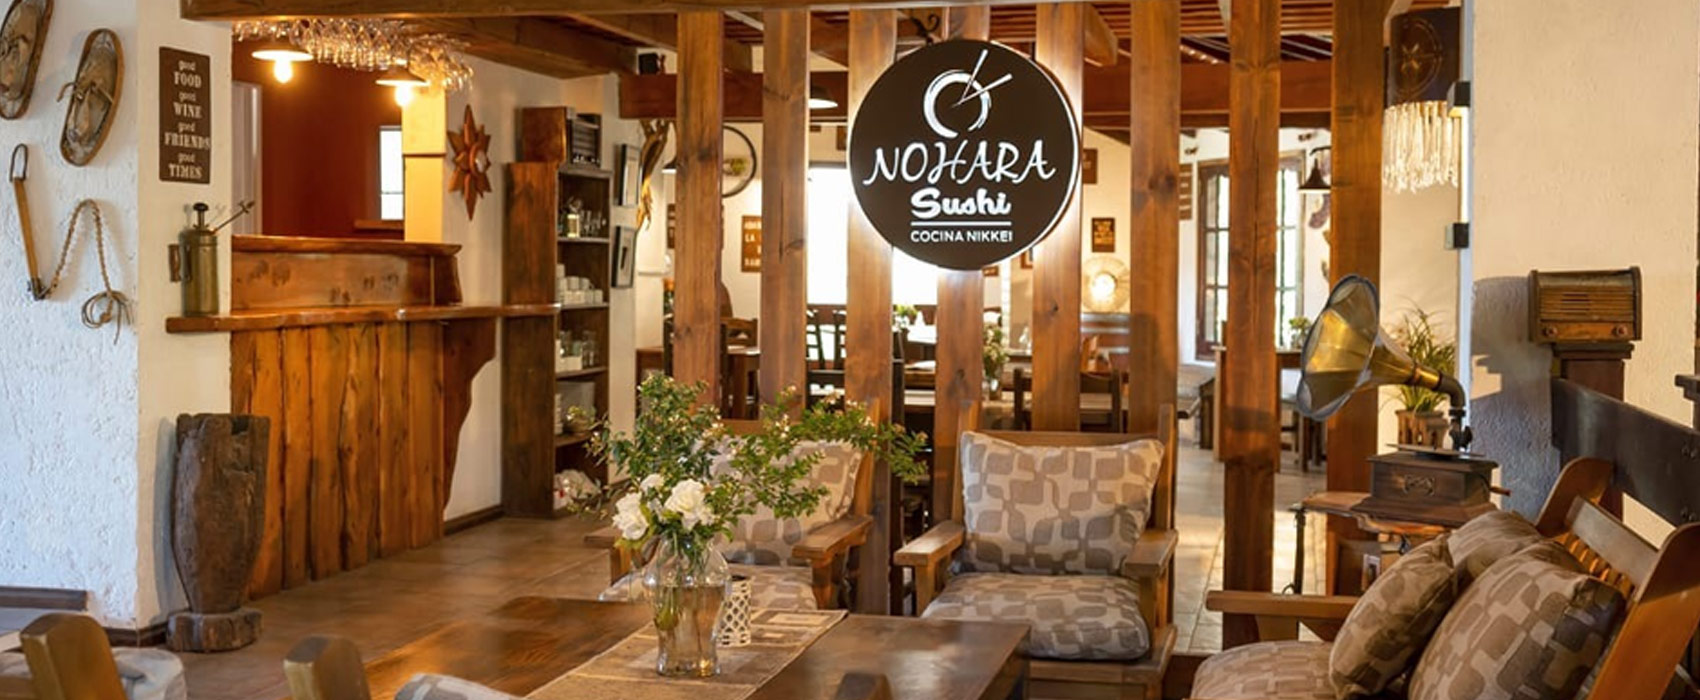 Nohara Sushi Take Away, Posada de Campo, villa general belgrano